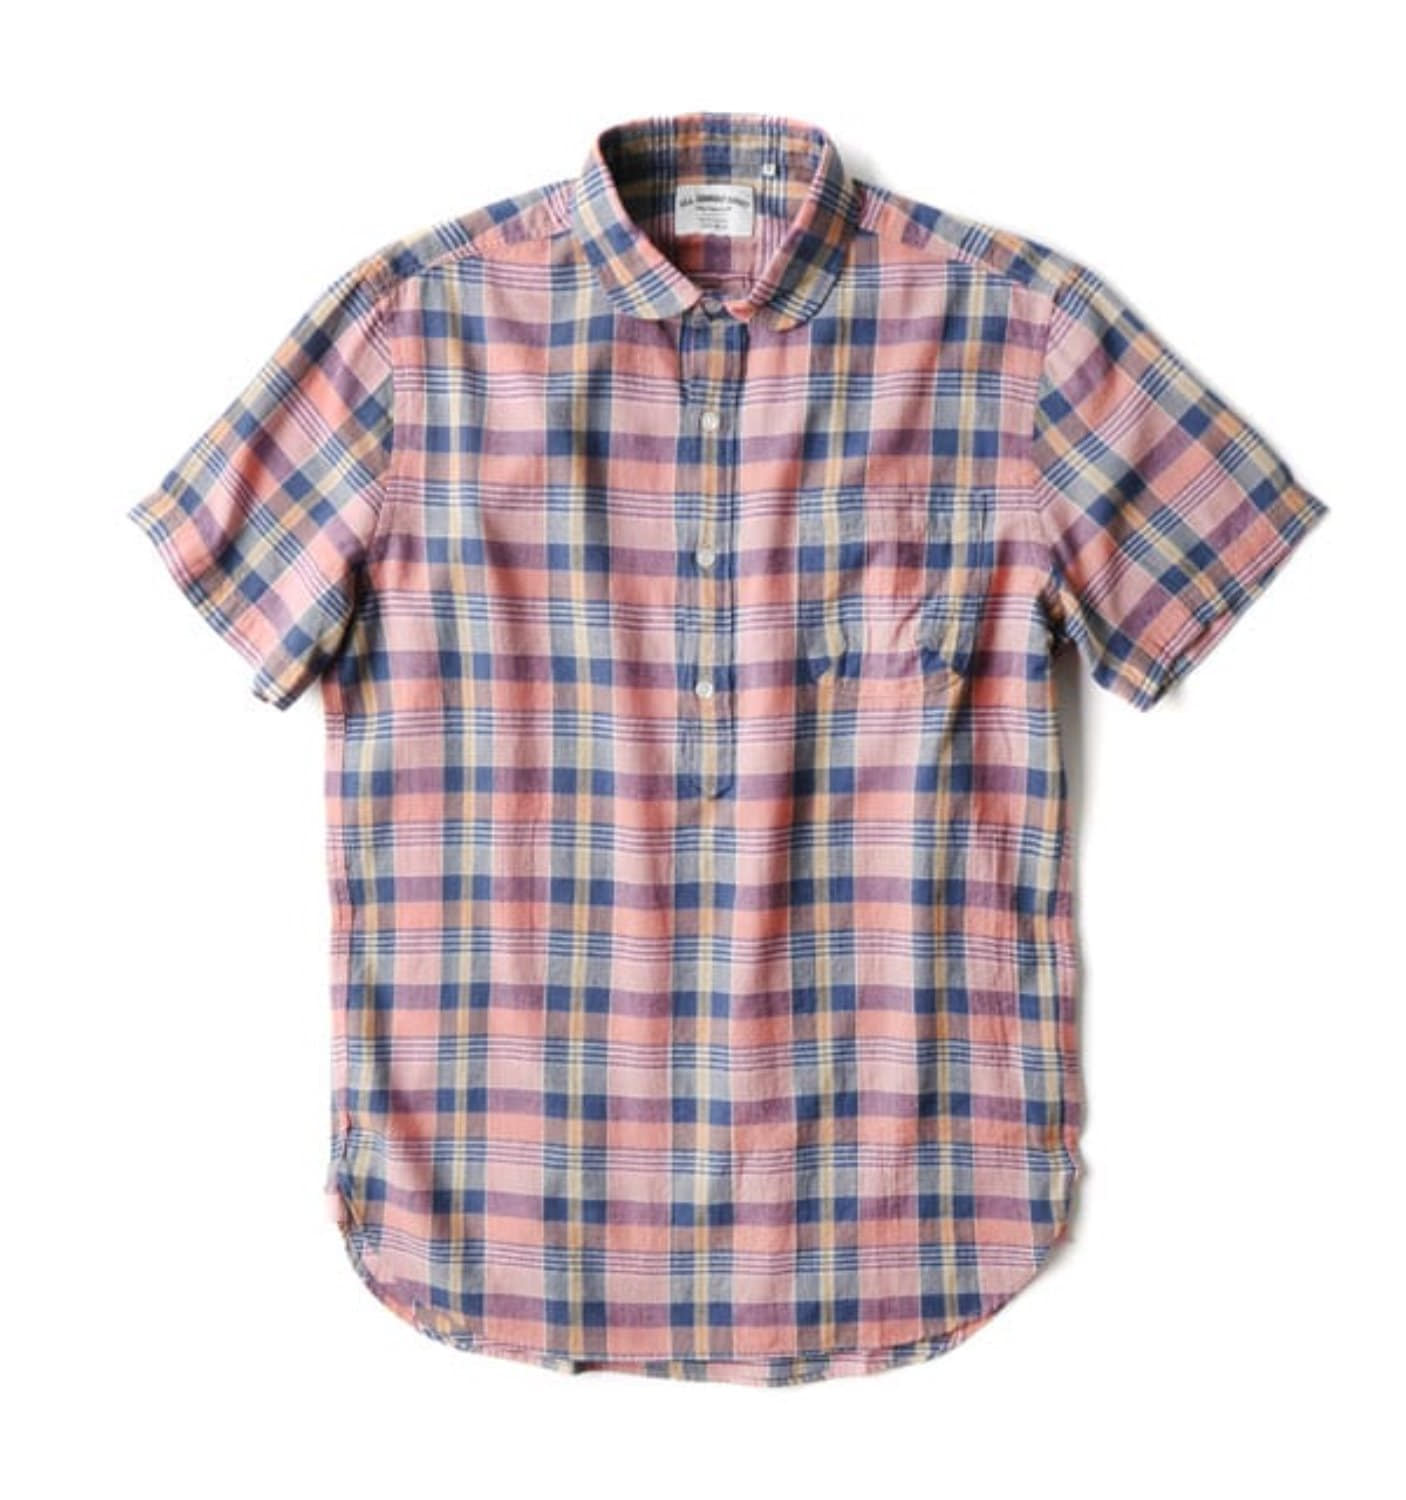 BAS02 PINK/INDIGO SUMMER PLAID SHIRT